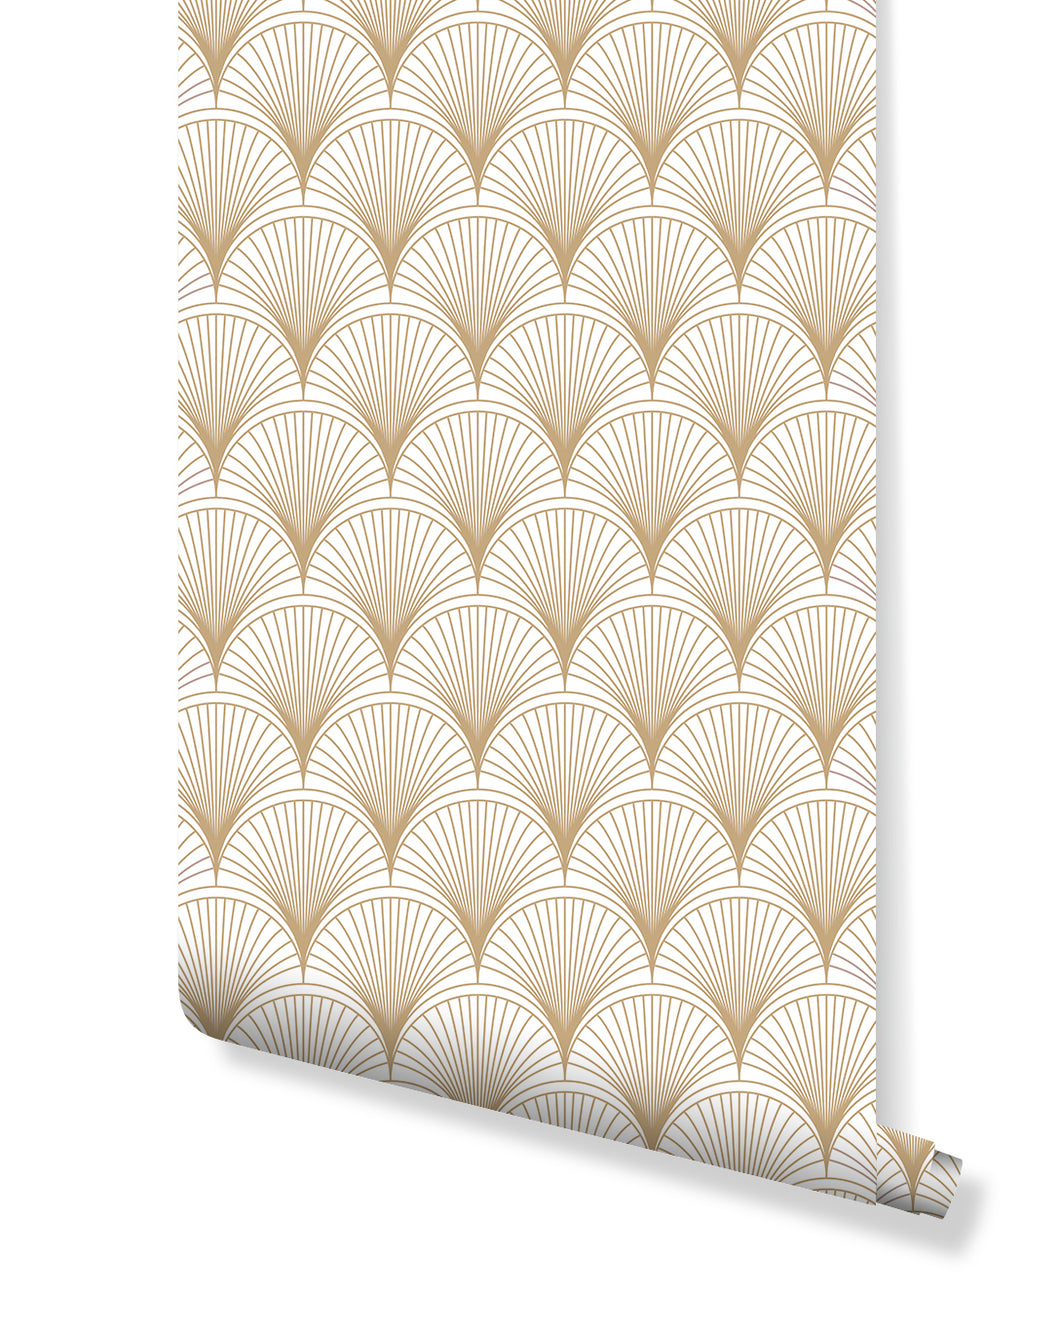 Temporary Wallpaper Art Deco Dark Gold Scalops Geometric Self Adhesive Removable Wall Paper with Luxury Design Custom Colors Available CC125